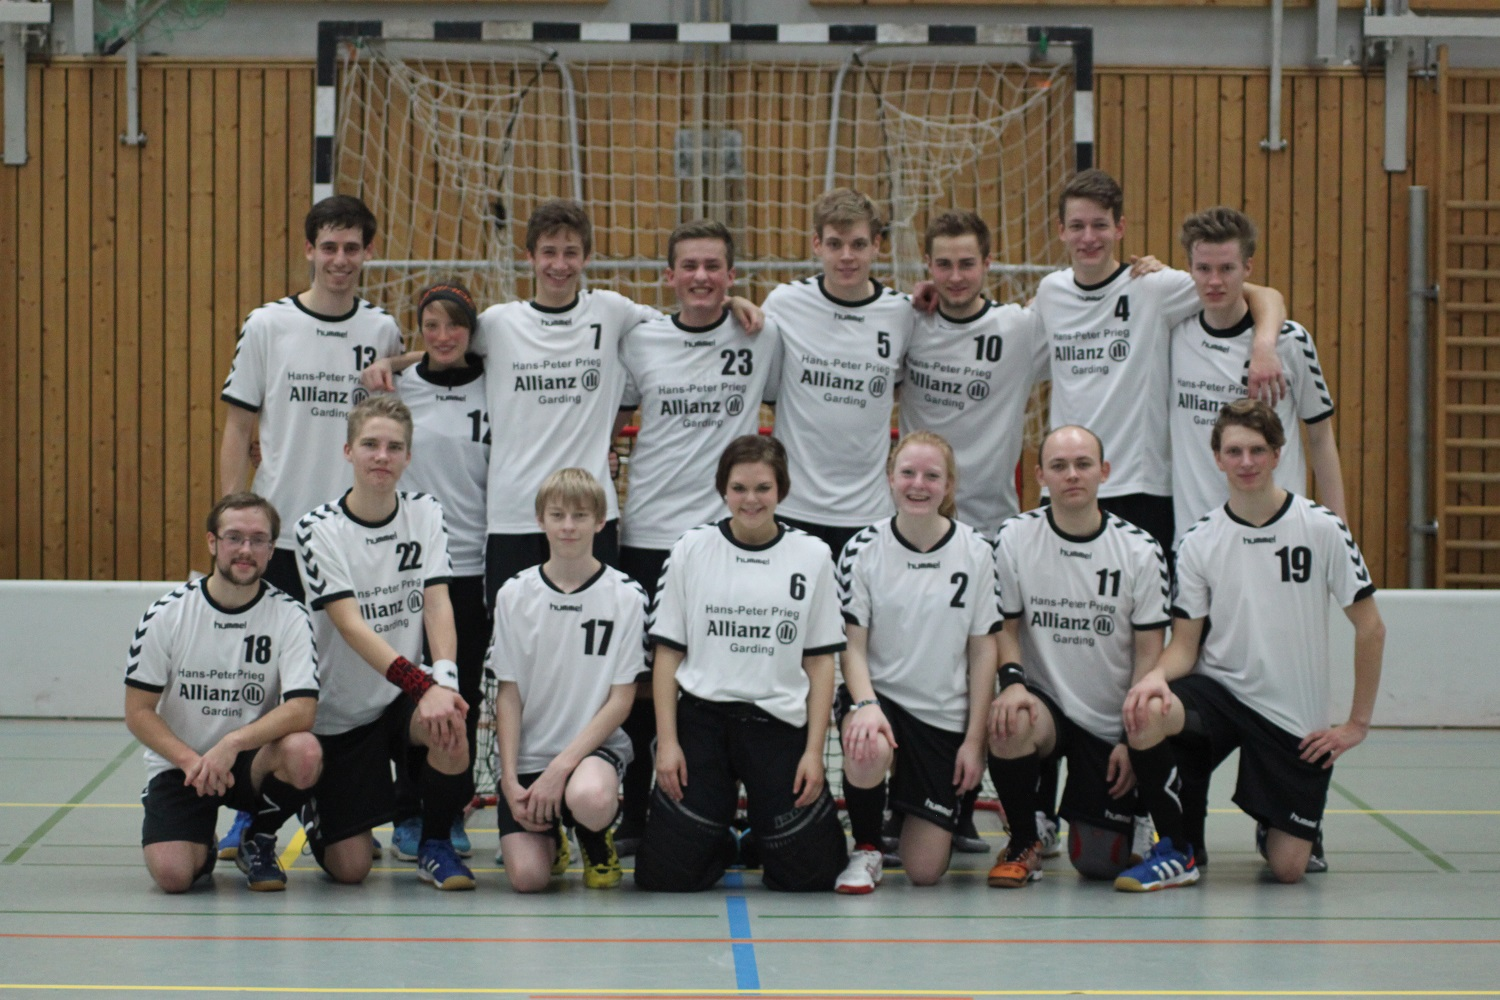 Das Herrenteam der Saison 2014/2015